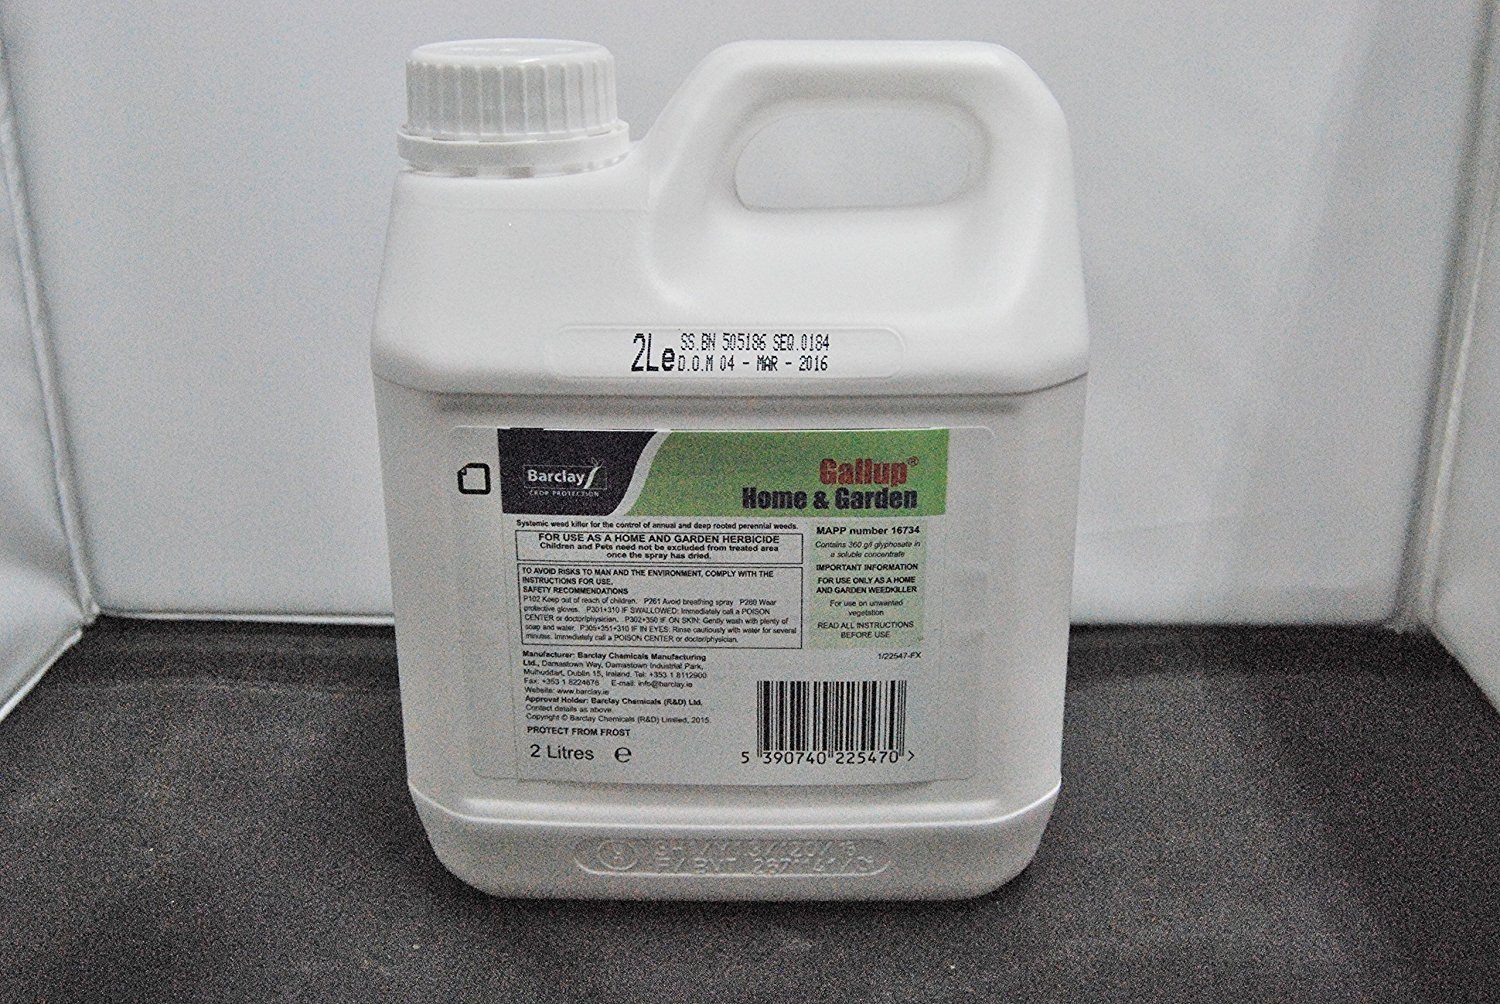 1 X2L GALLUP Non - PrOFESSIONAL USE GLYPHOSATE WEEDKILLER Home and Garden ****BRAND NEW PRODUCT ******